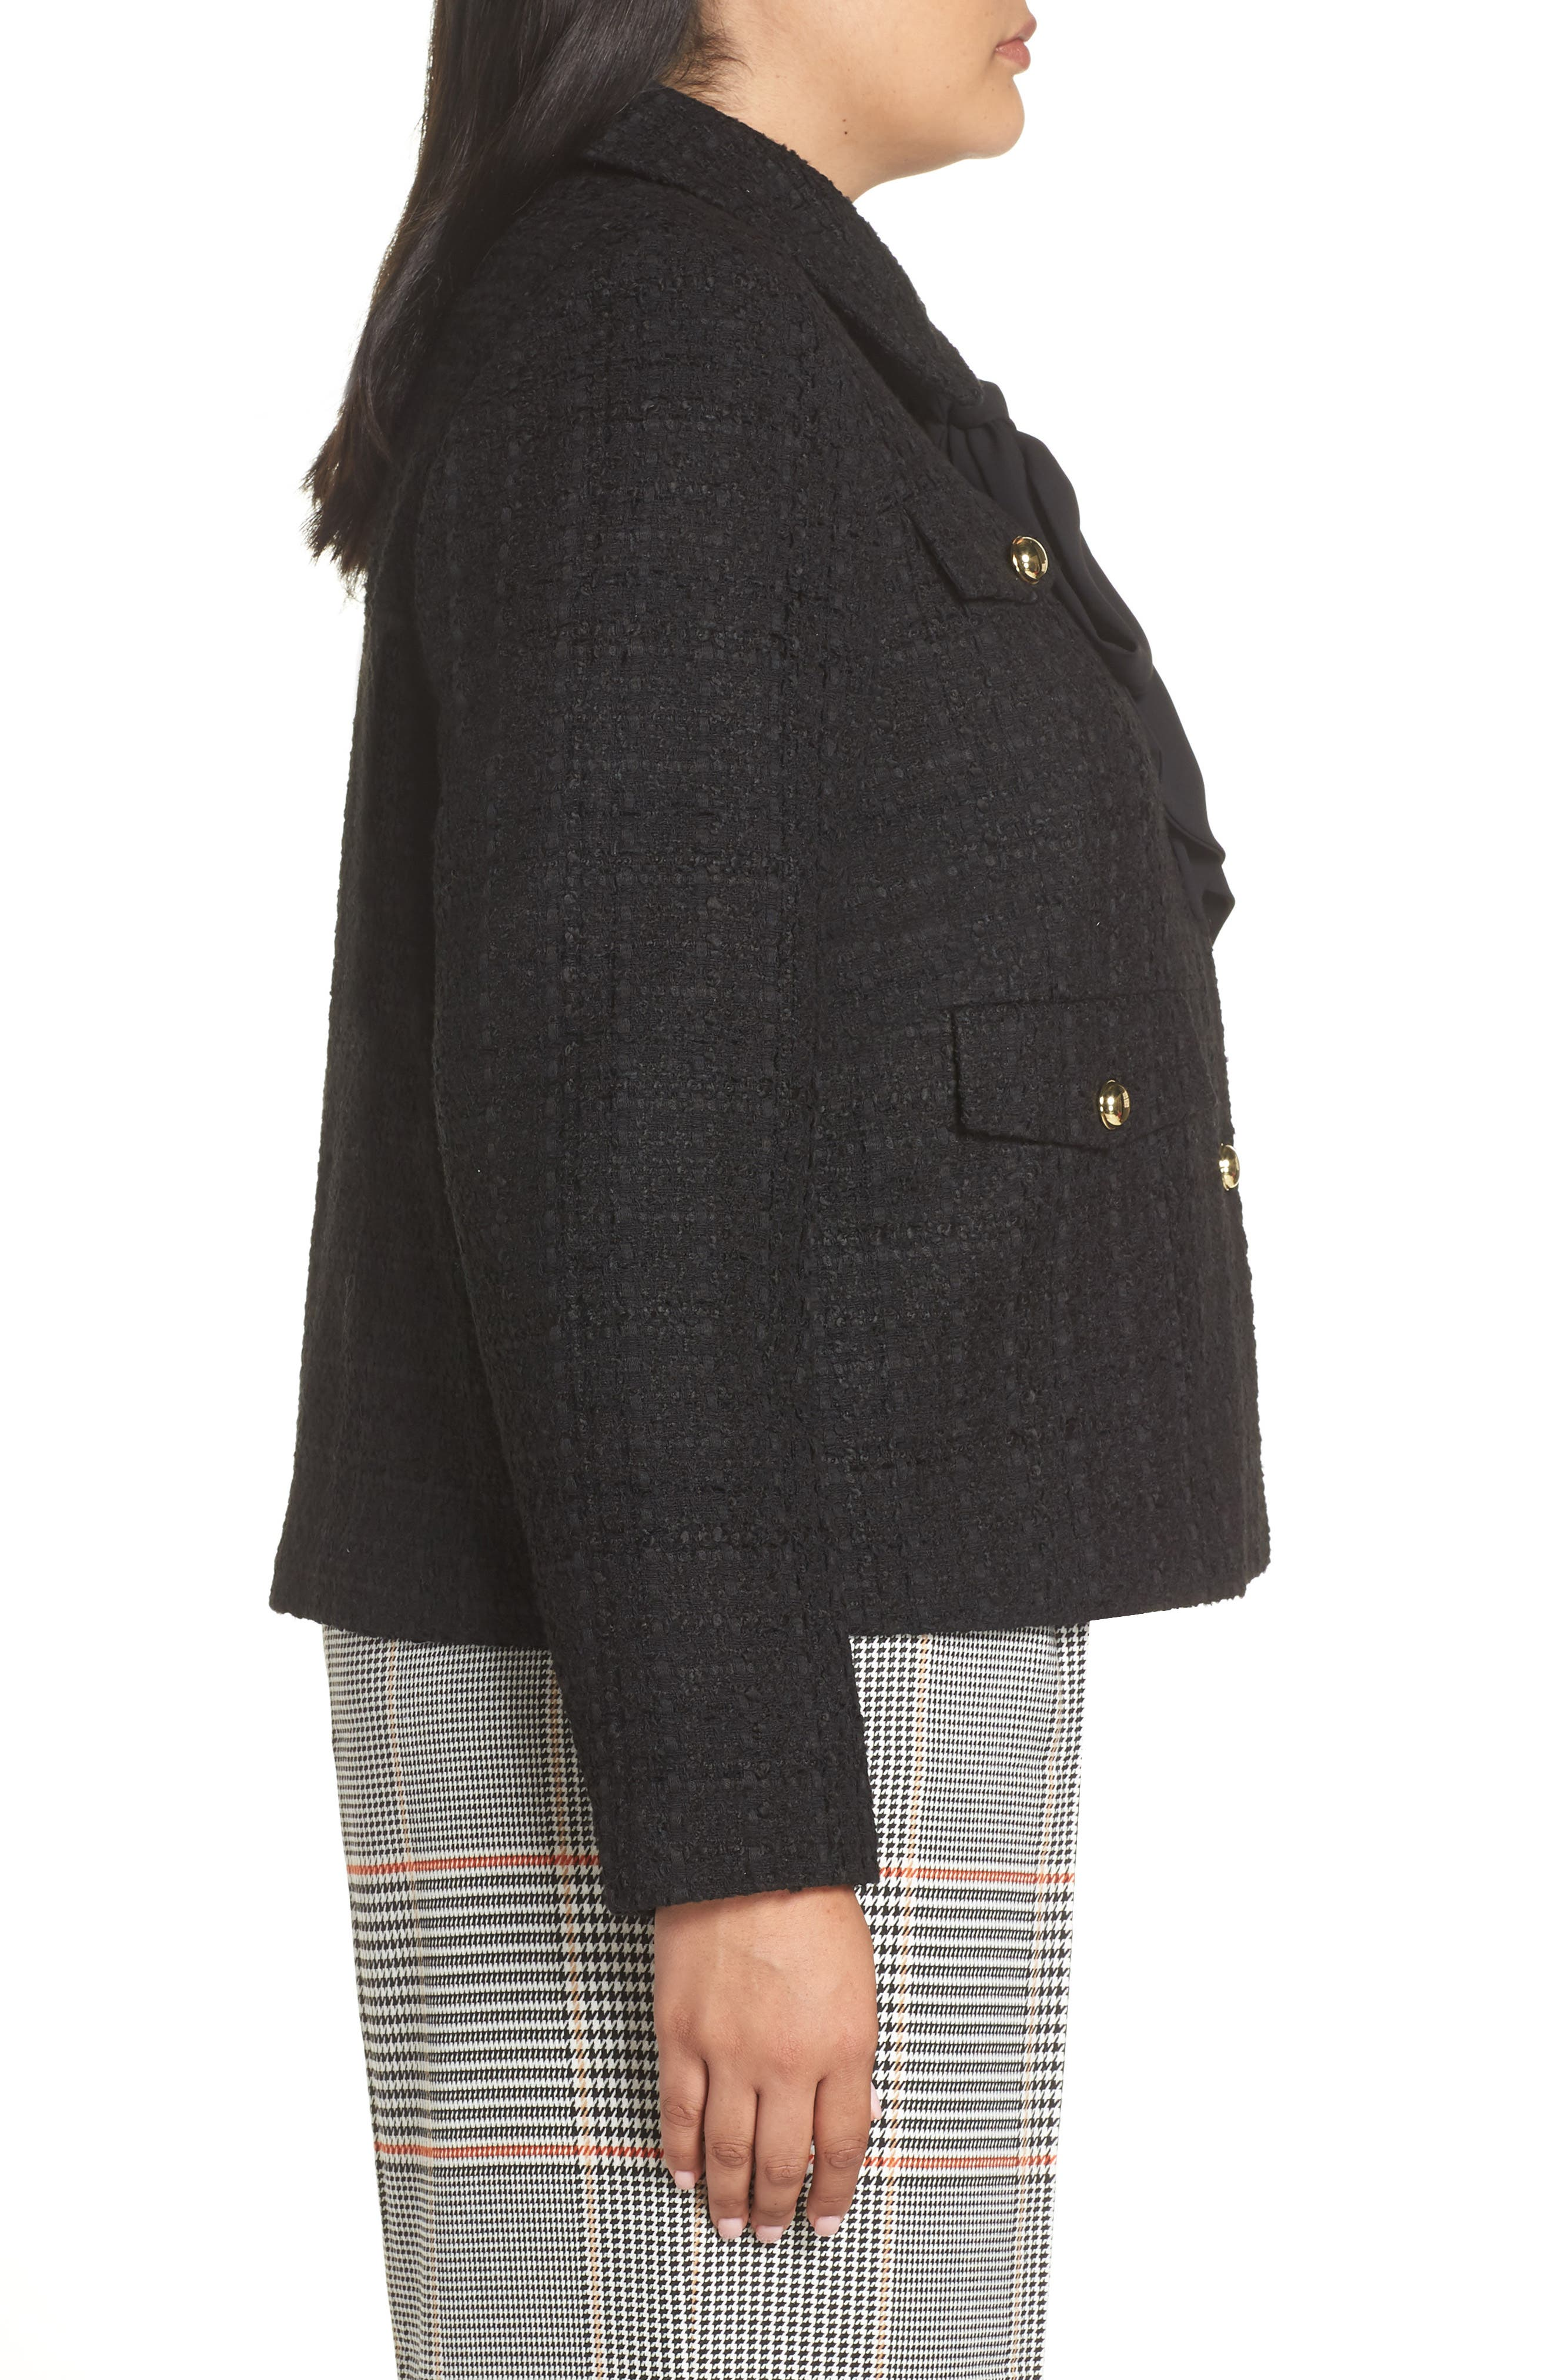 x Atlantic-Pacific Bow Detail Tweed Jacket,                             Alternate thumbnail 3, color,                             001